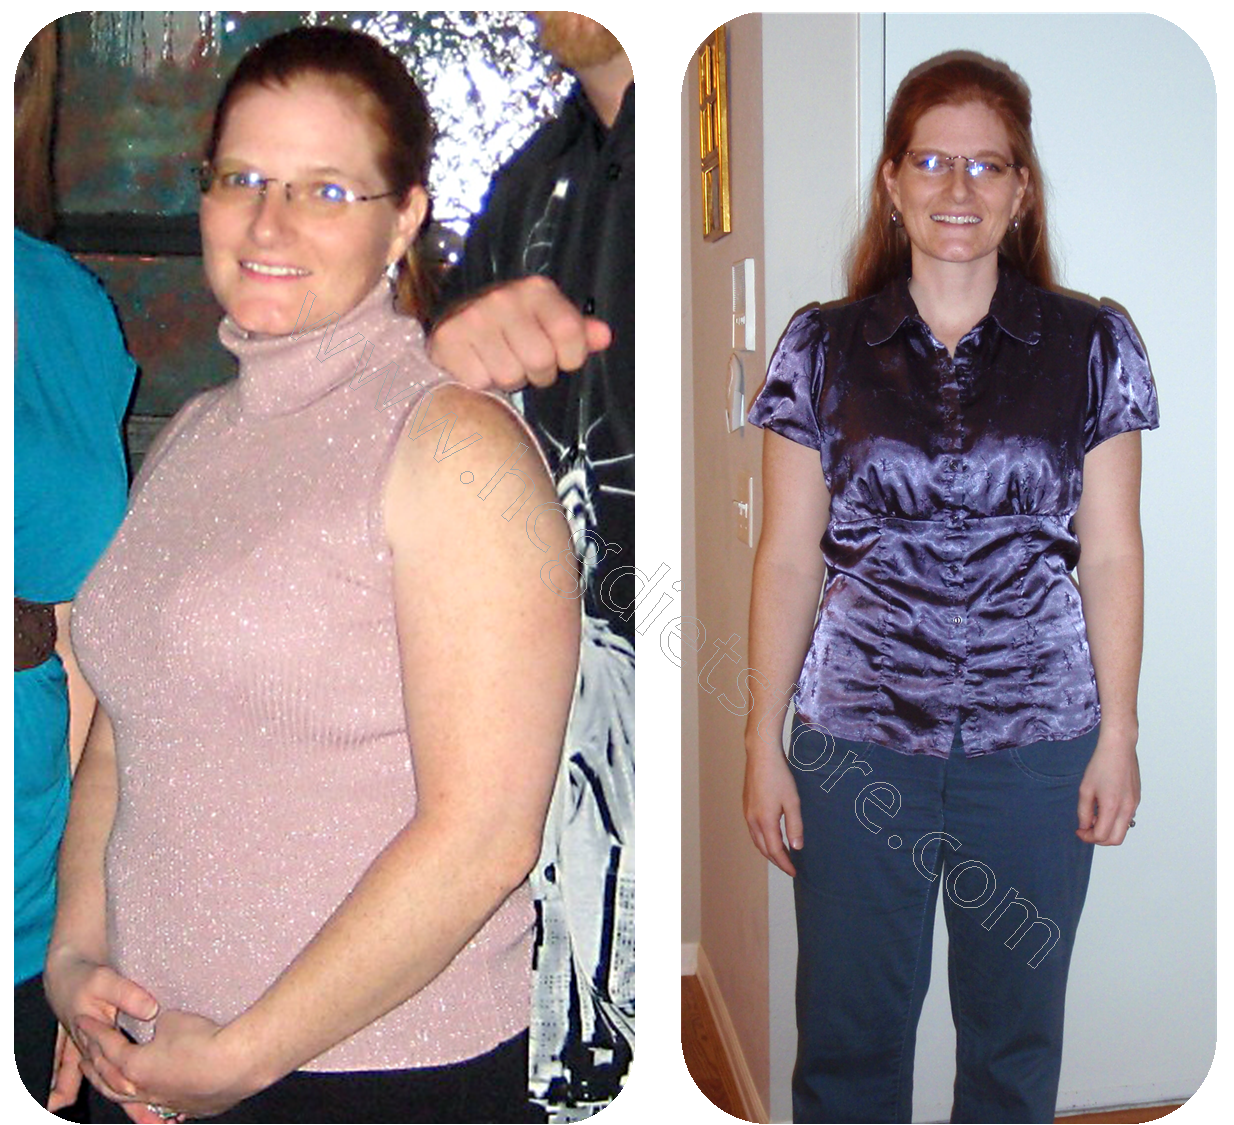 hcg diet before and after, hcg before and after, hcg weight loss before and after, before and after pictures for HCG